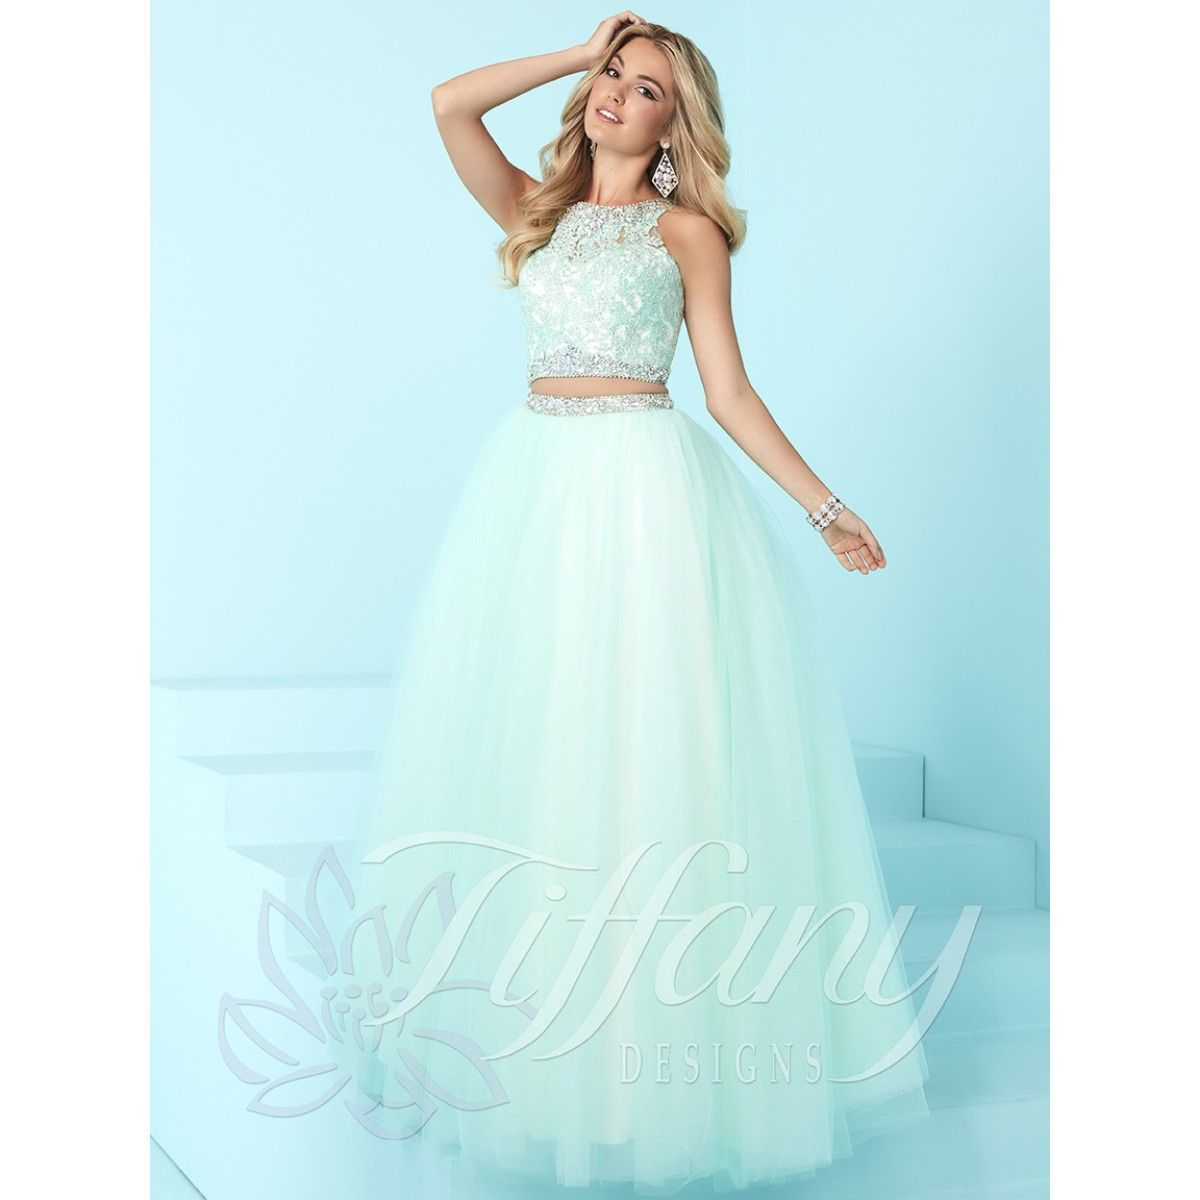 Tiffany Designs 16257 two piece ball gown dress for prom or formal ...